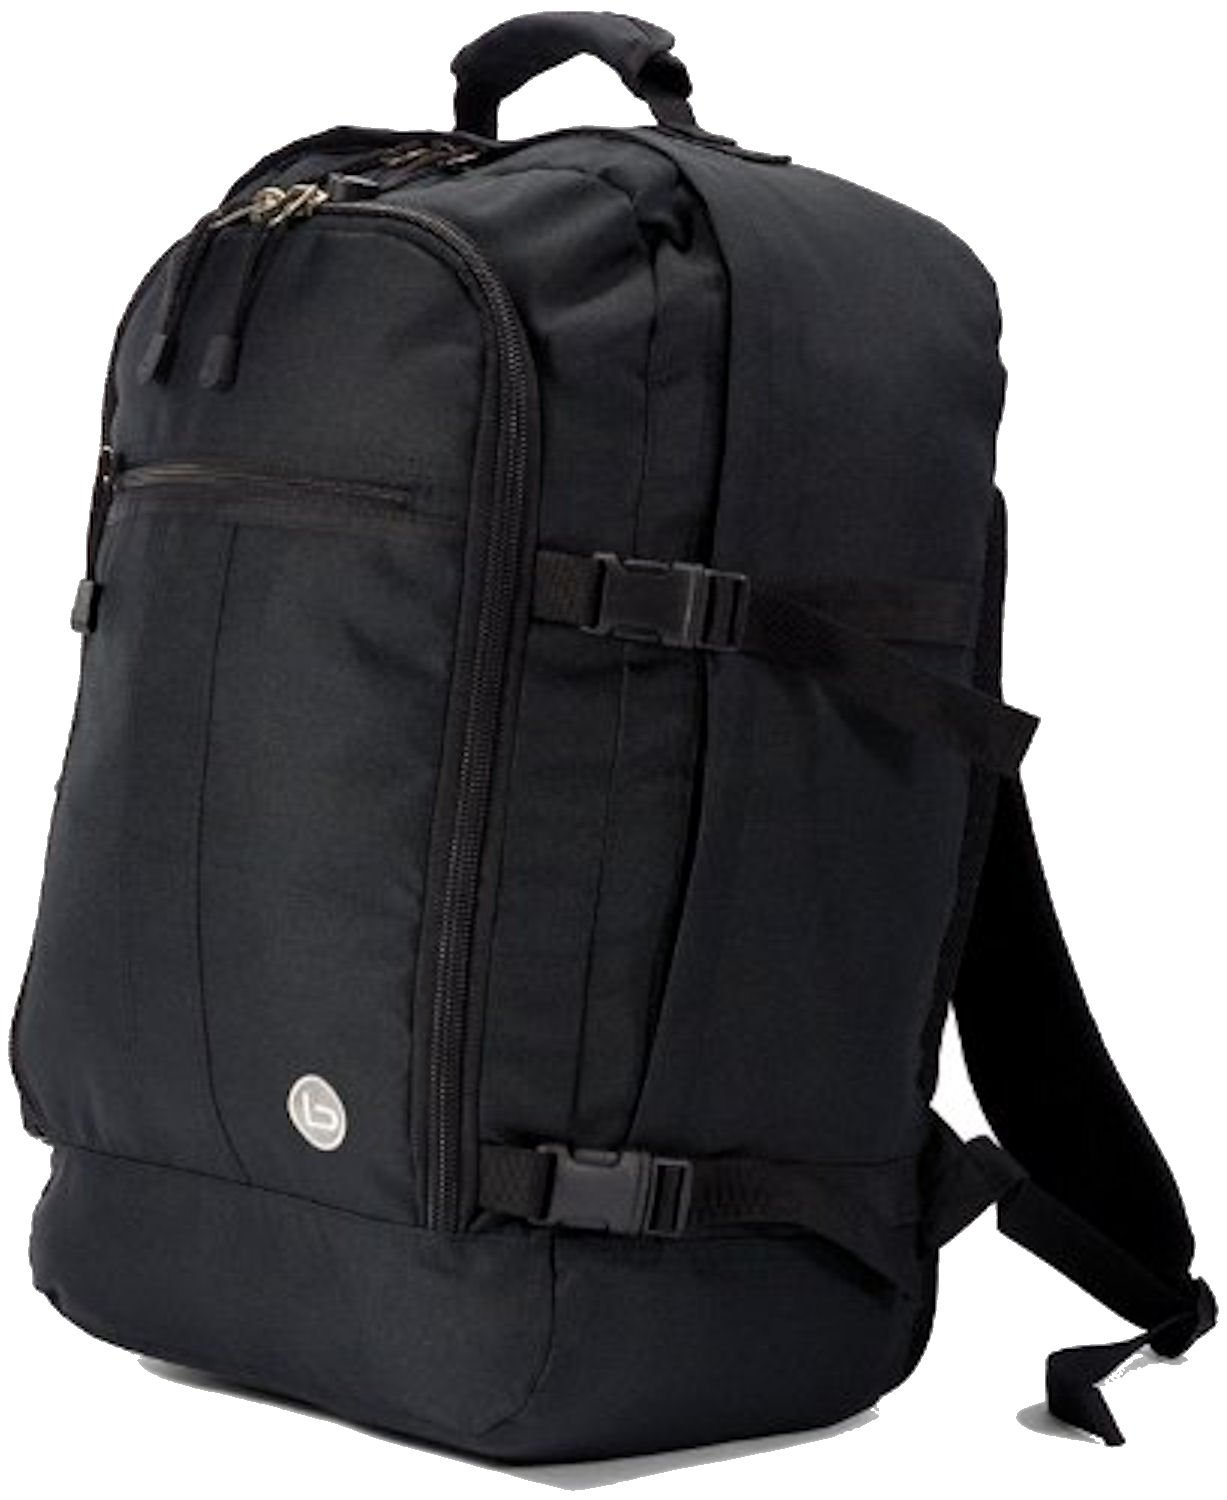 Benzi Cabin Maximum Approved Carry On Bag Backpack Massive 40 Liter